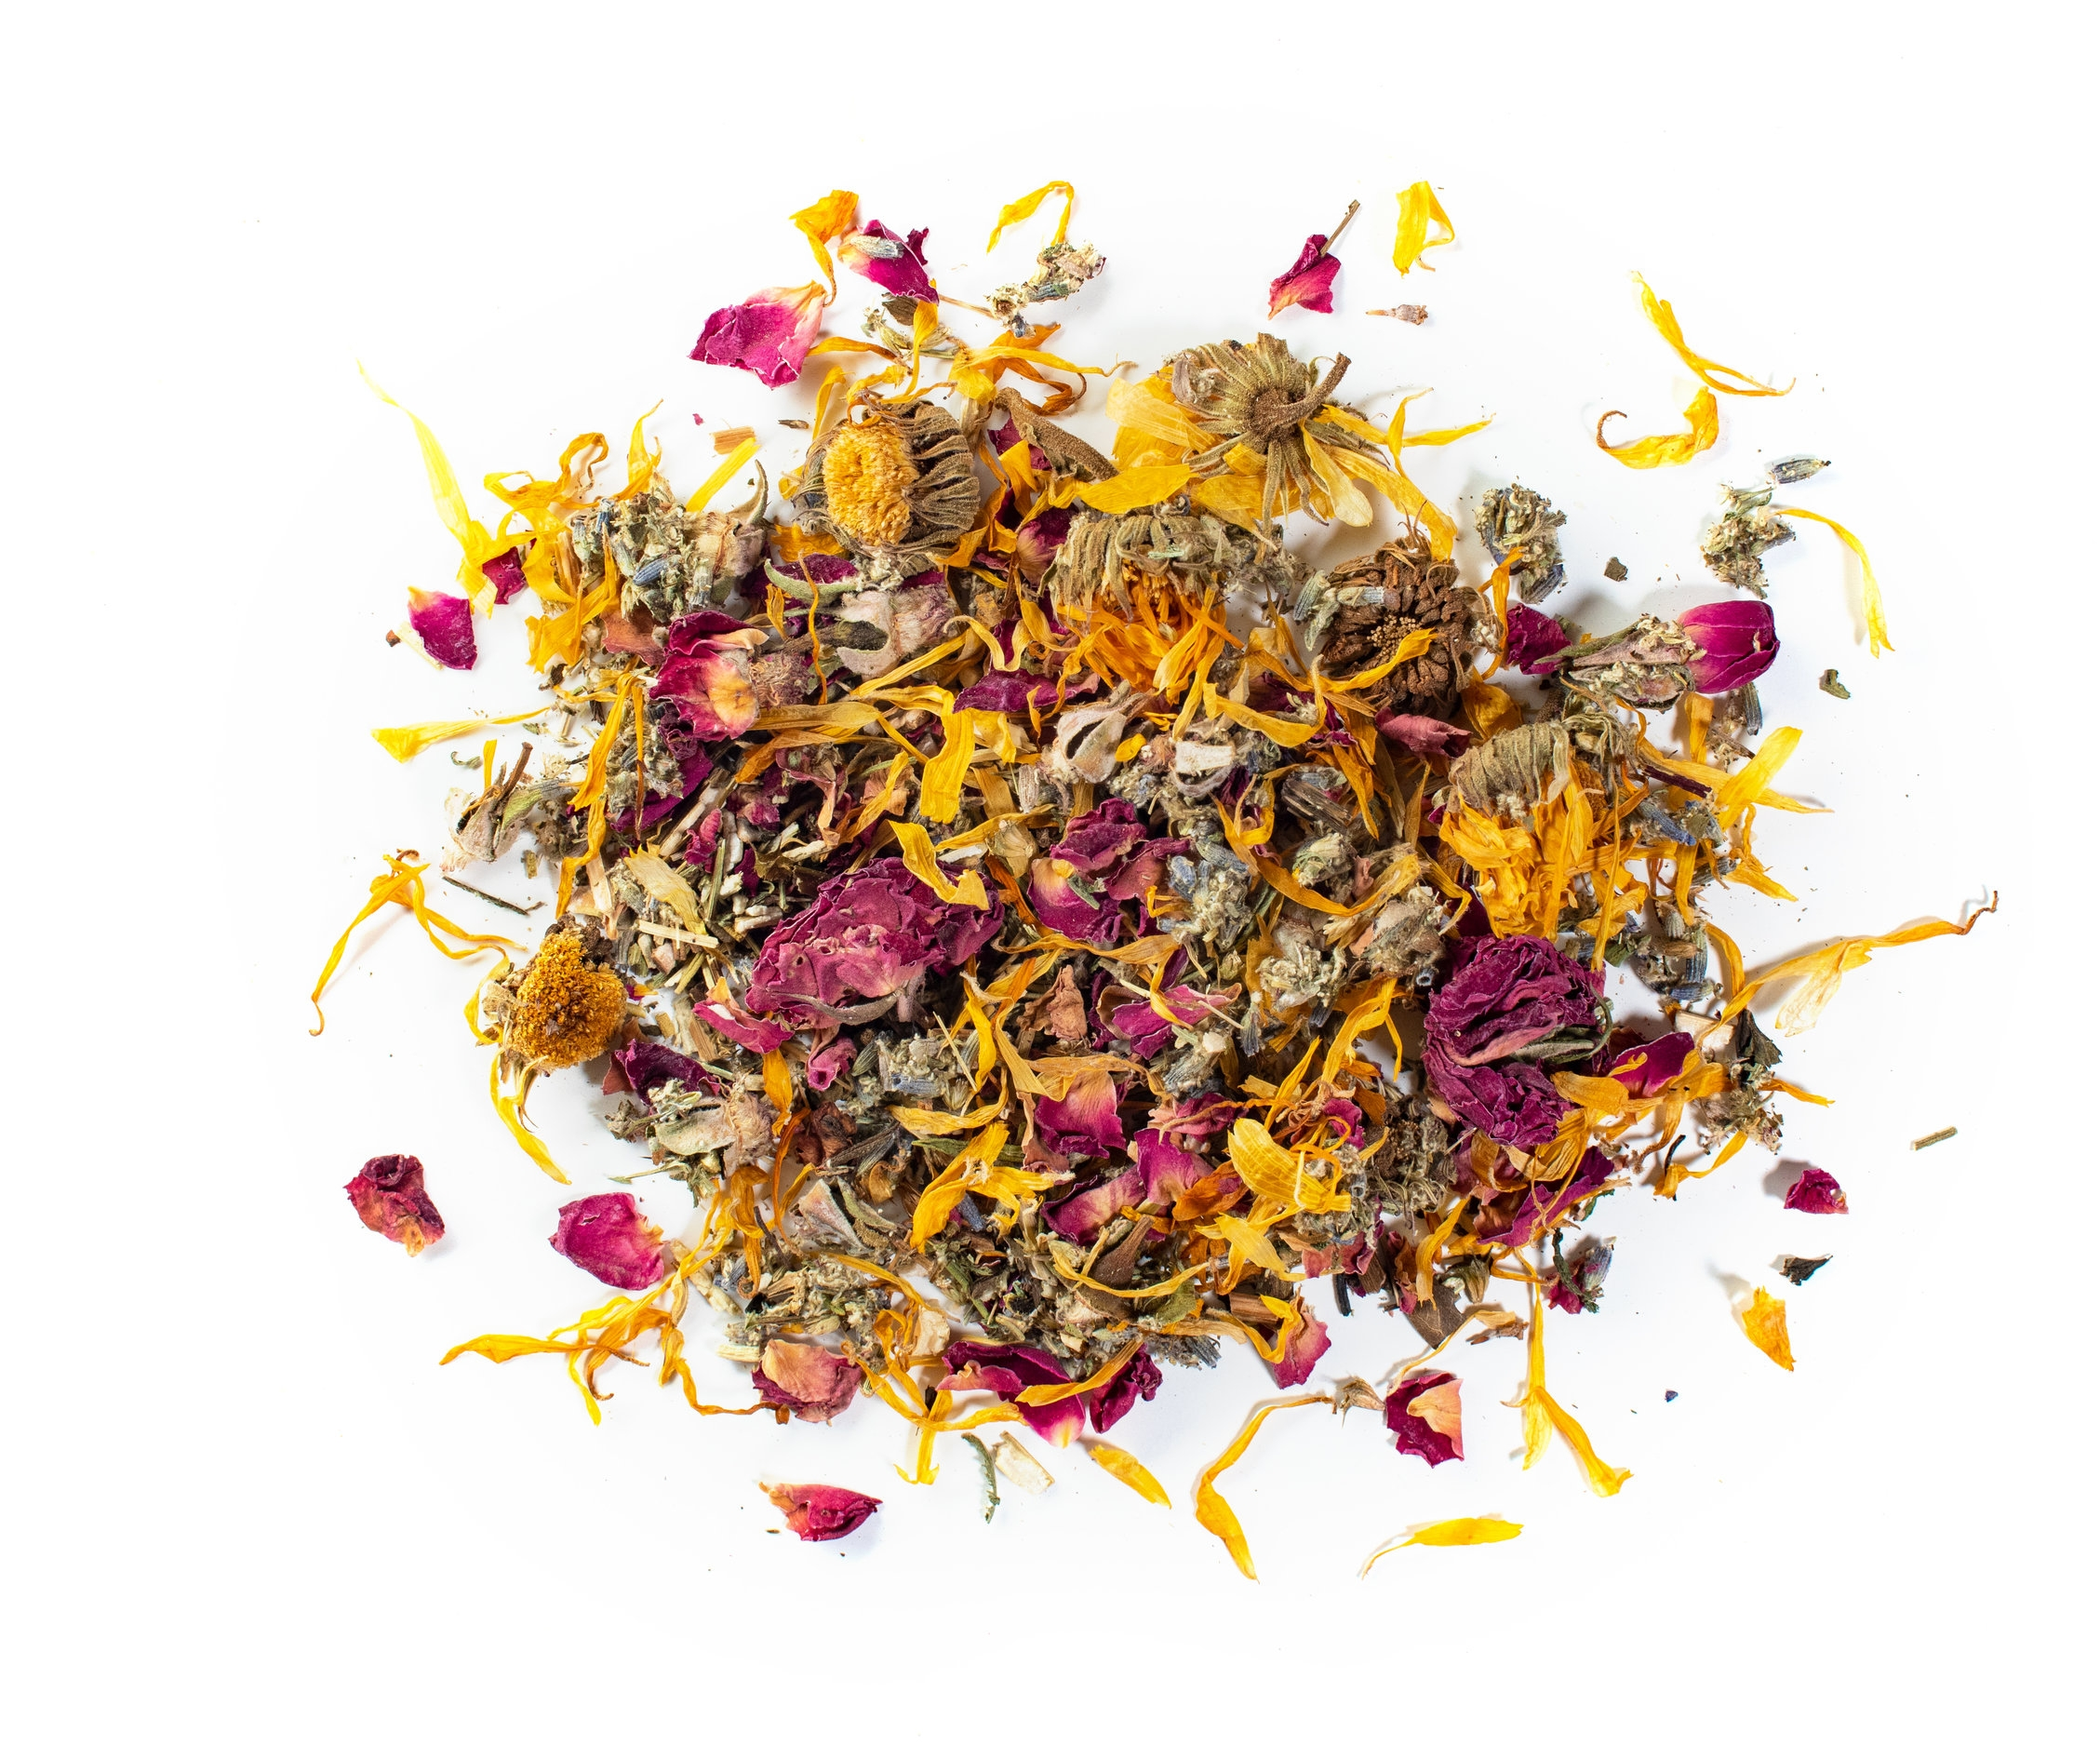 Yoni Steaming is… - an ancient practice that provides gentle and effective support for women's reproductive health. Benefits range from preventing menstrual discomfort, to improving fertility, to treating the symptoms of menopause. This well-respected herbal remedy is both enjoyable and effective, and can be used safely by women at home on a regular basis.Learn More